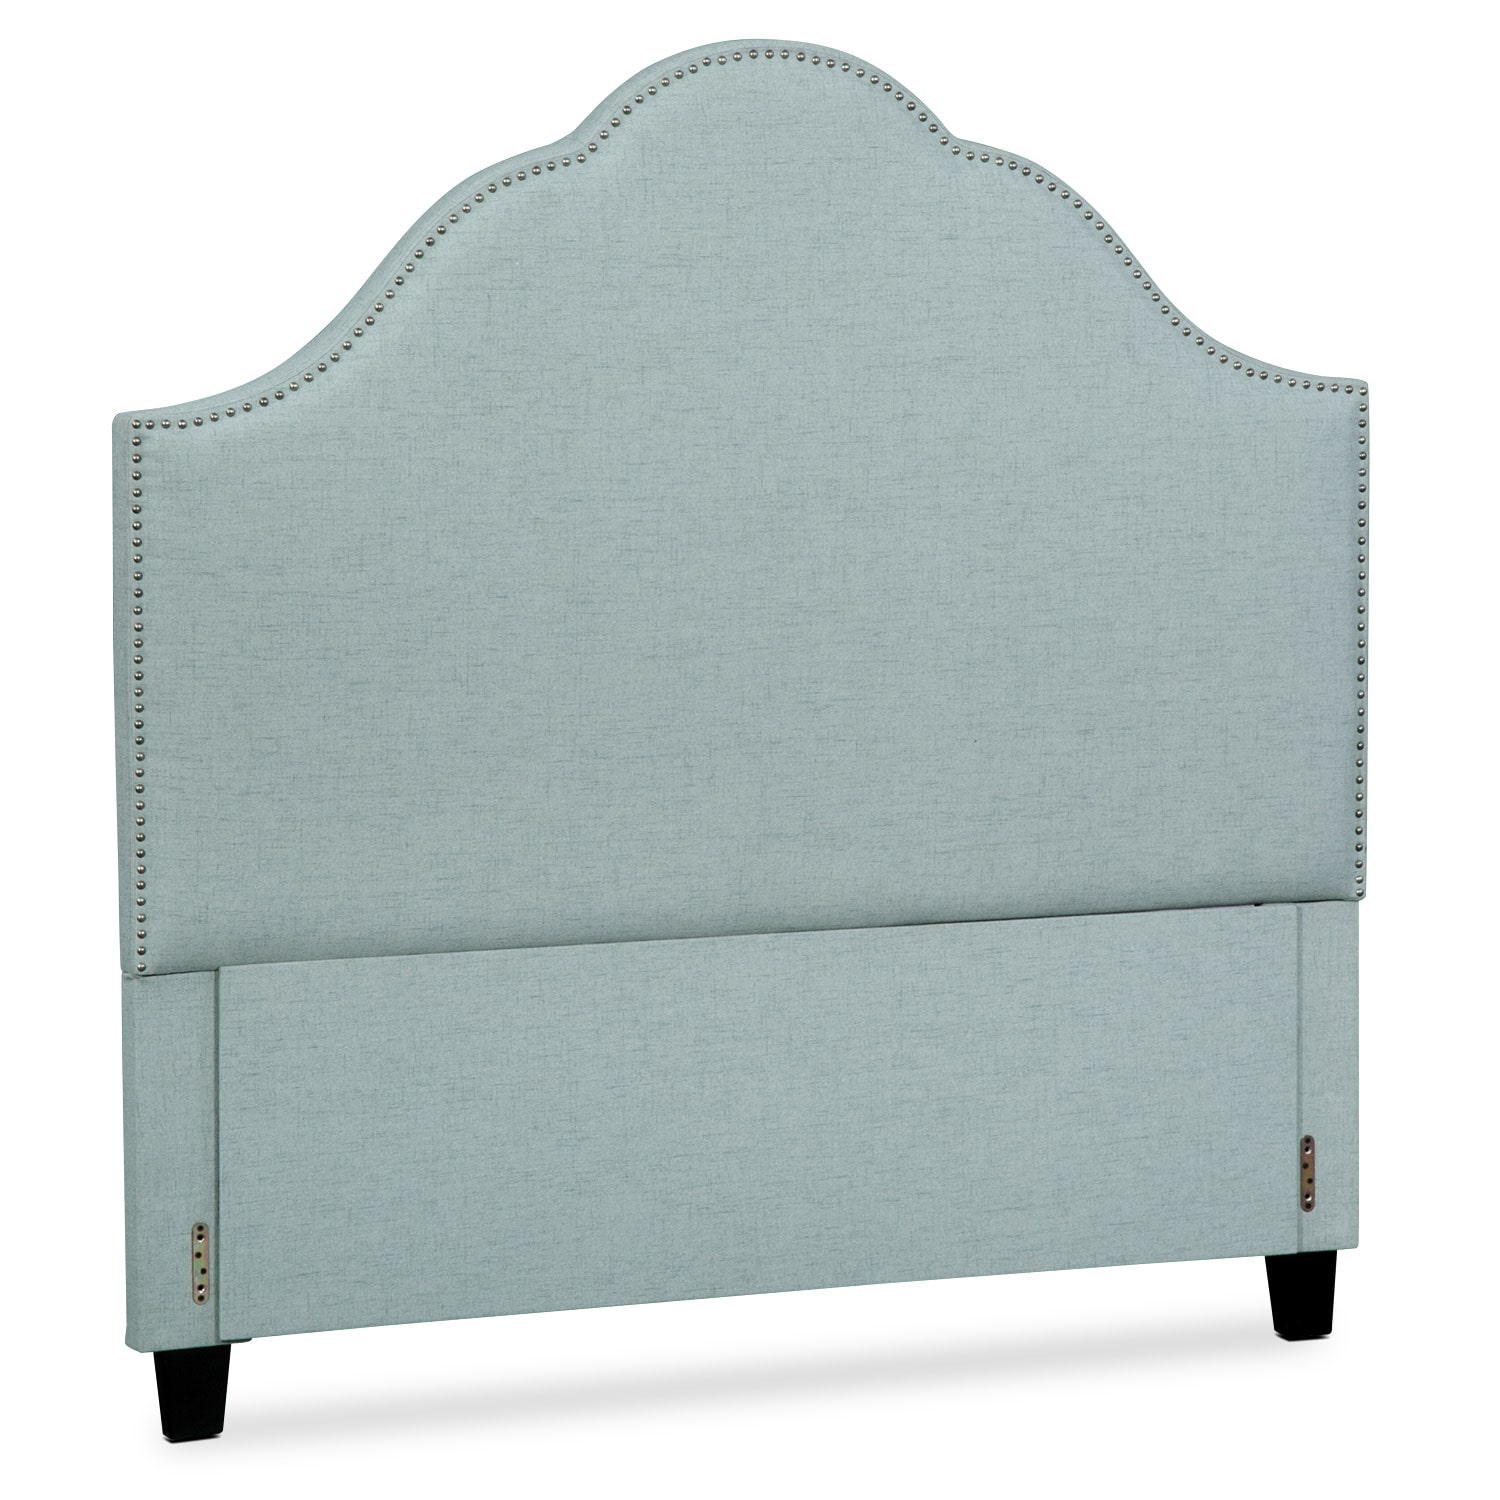 Maya Queen Upholstered Headboard - Aqua